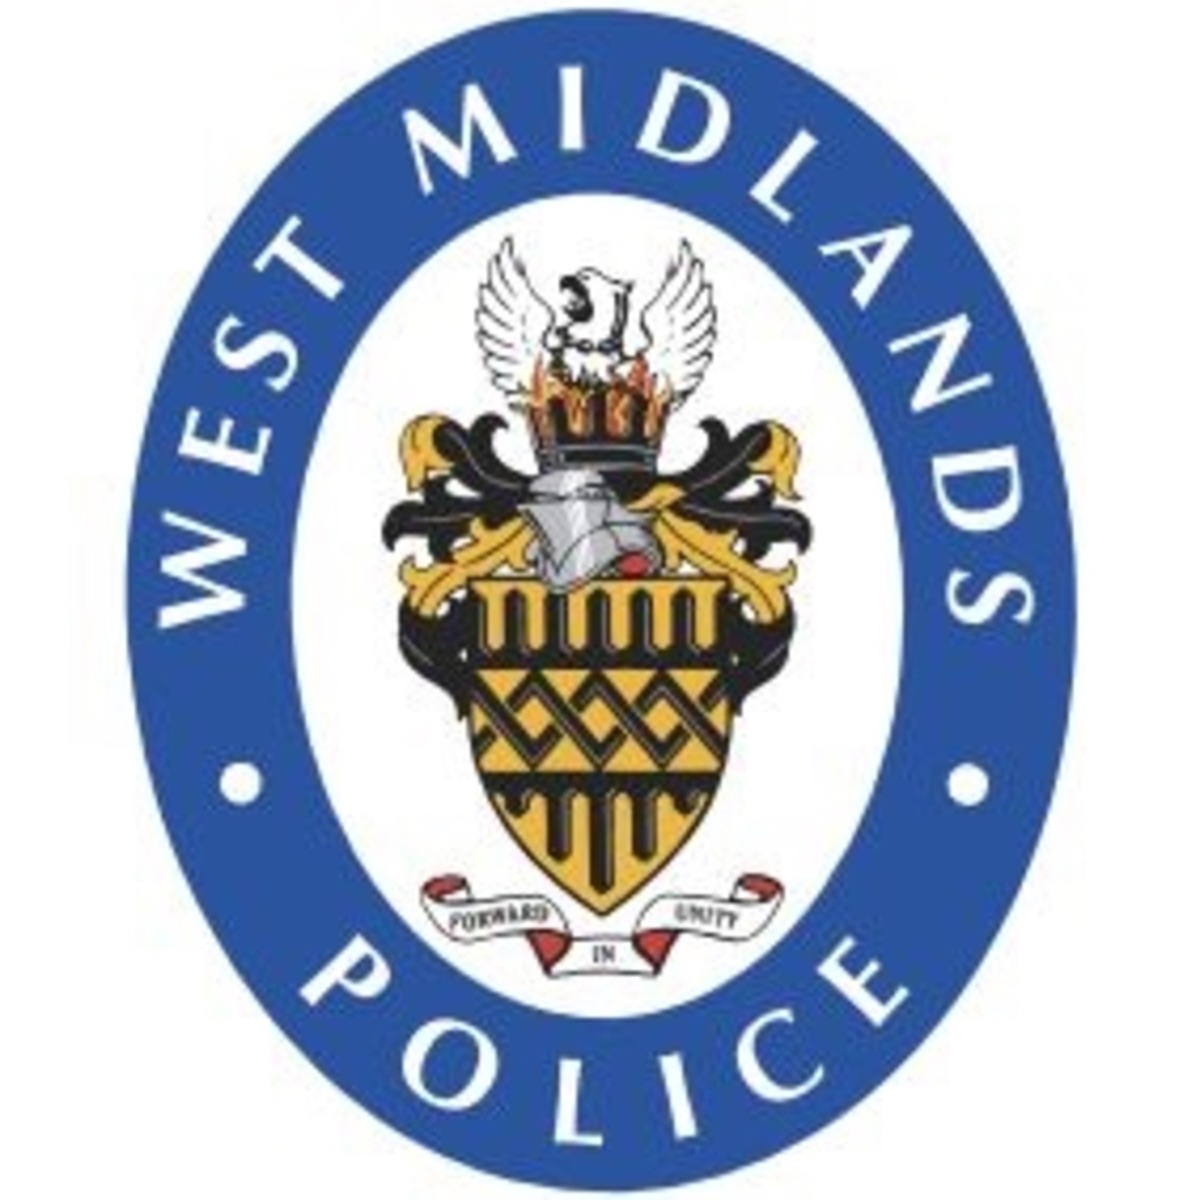 YM from West Midlands Police